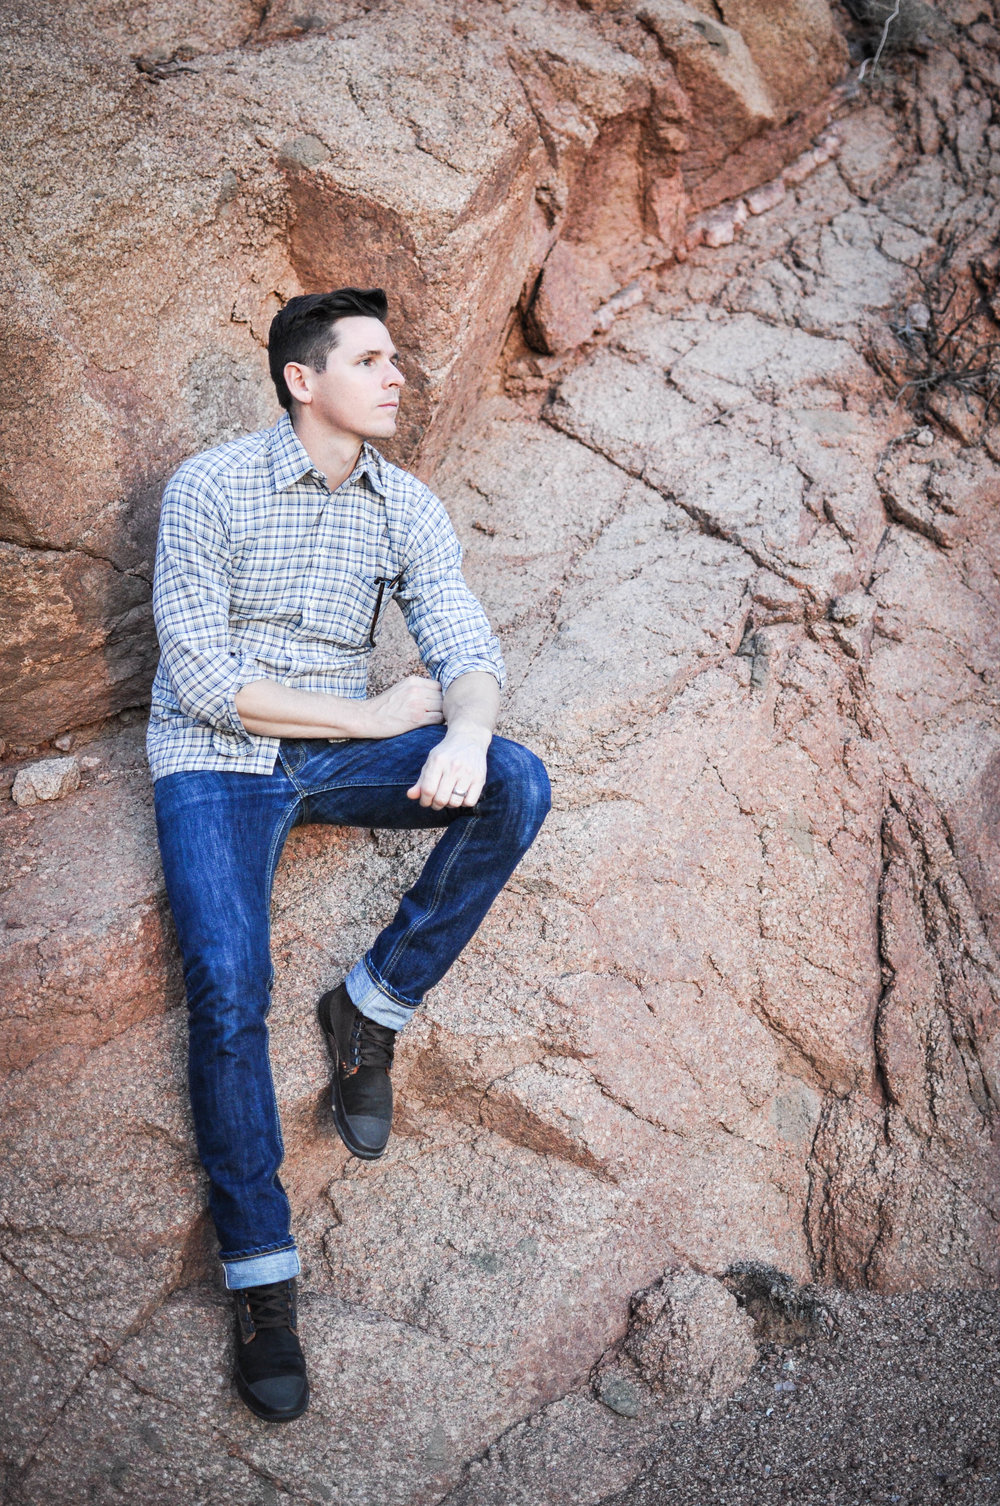 Man in jeans sitting on rocks